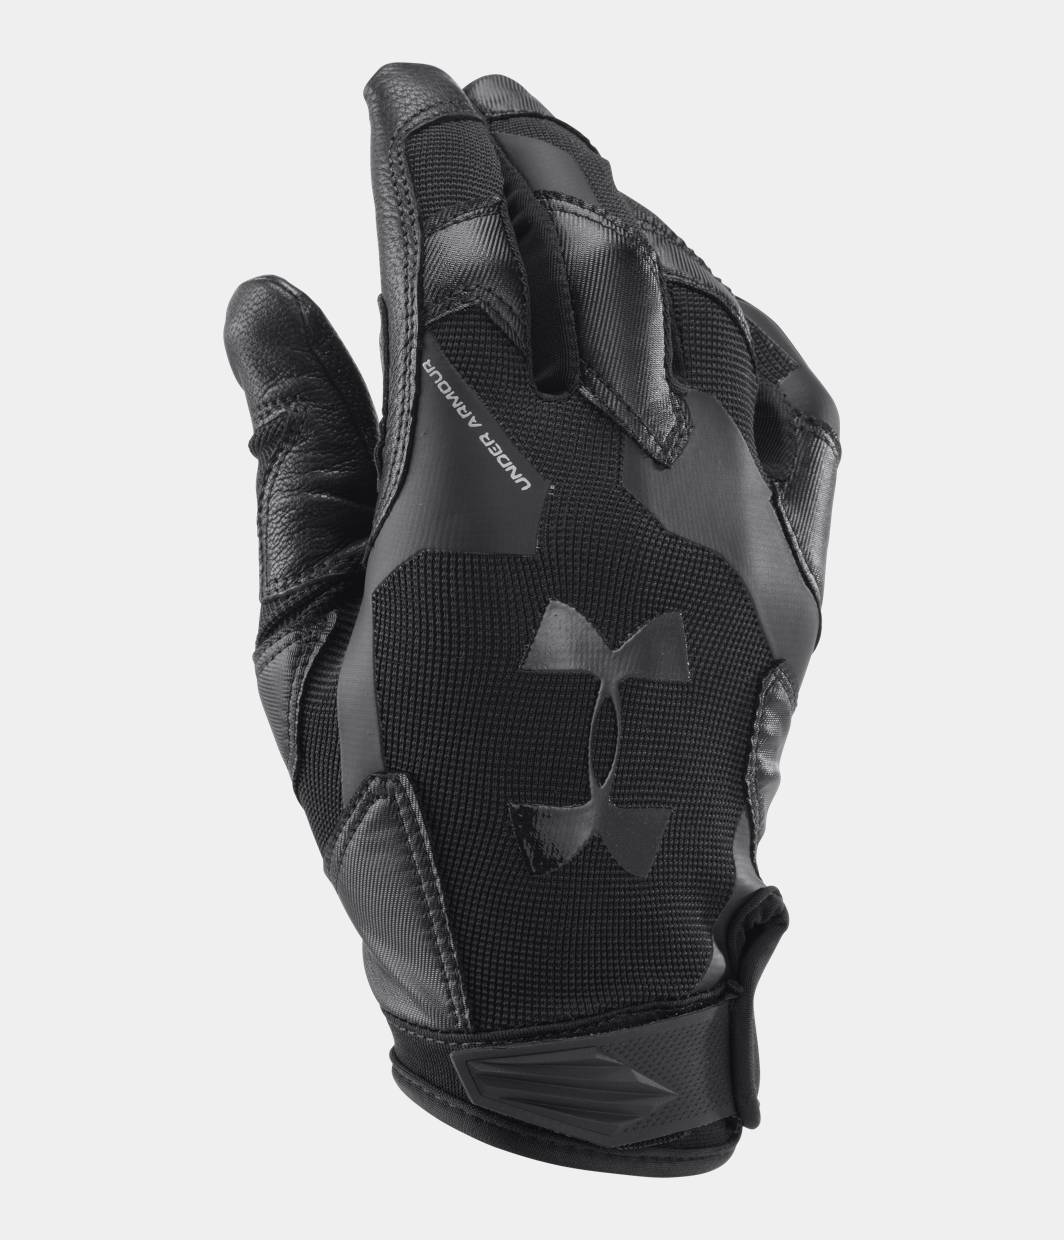 Under Armour Men's Renegade Training Gloves